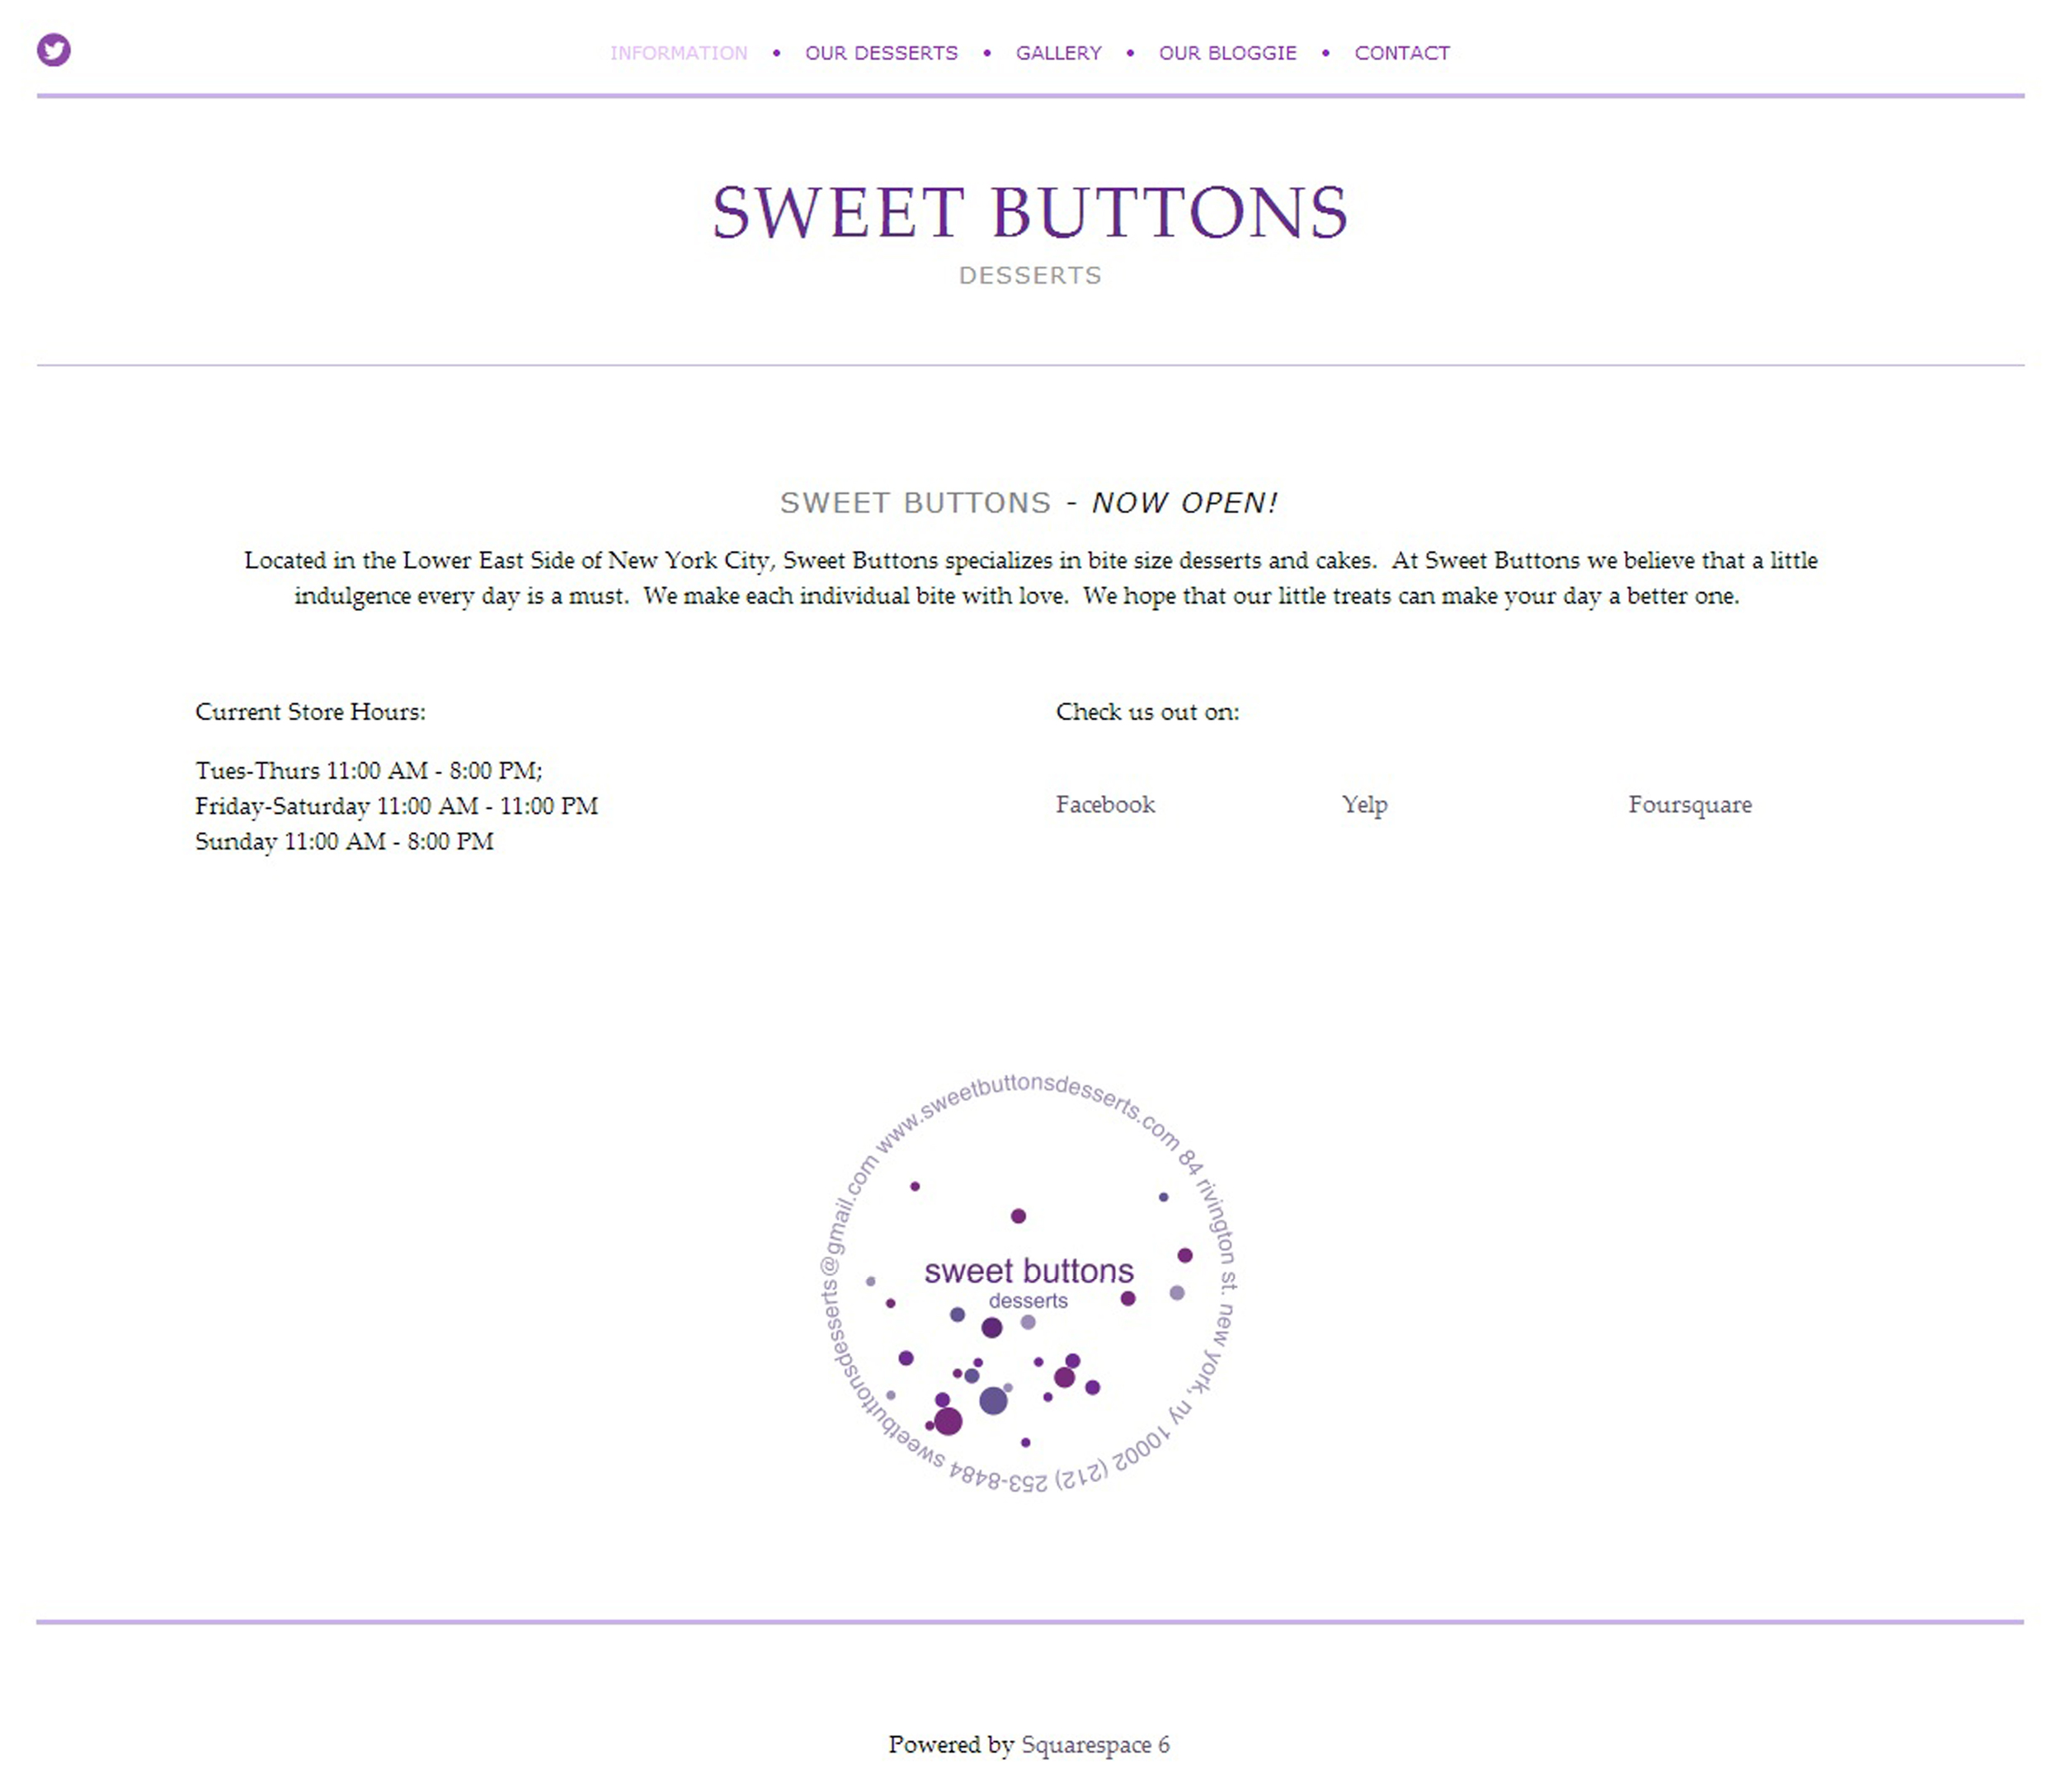 SweetButtons_Home.jpg